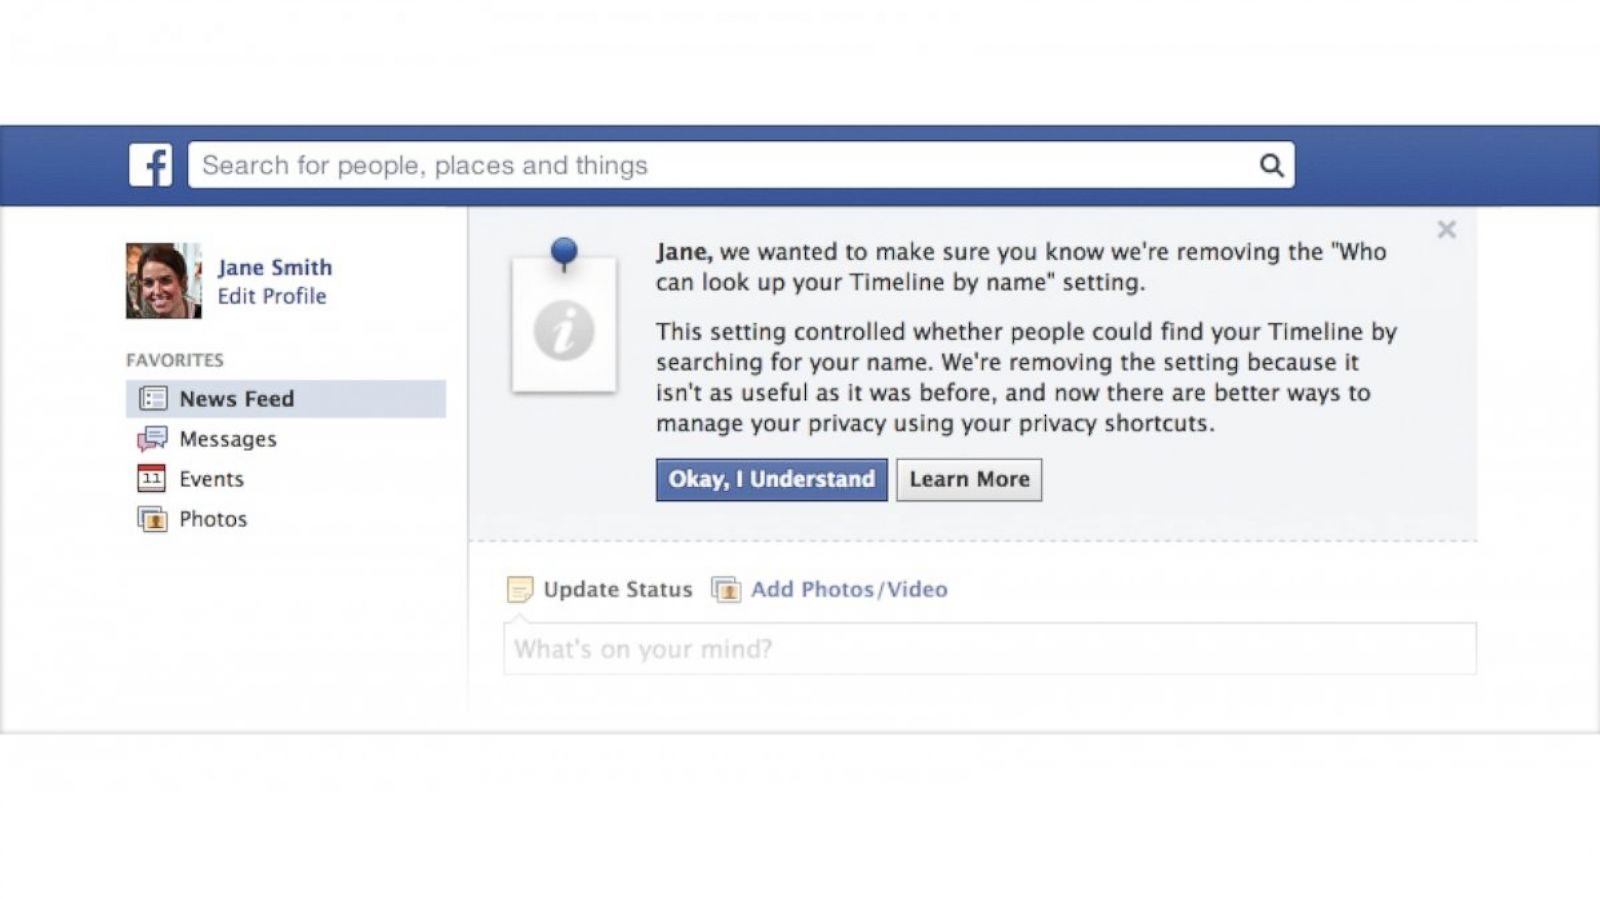 Facebook Makes All Of Its Users Searchable - ABC News